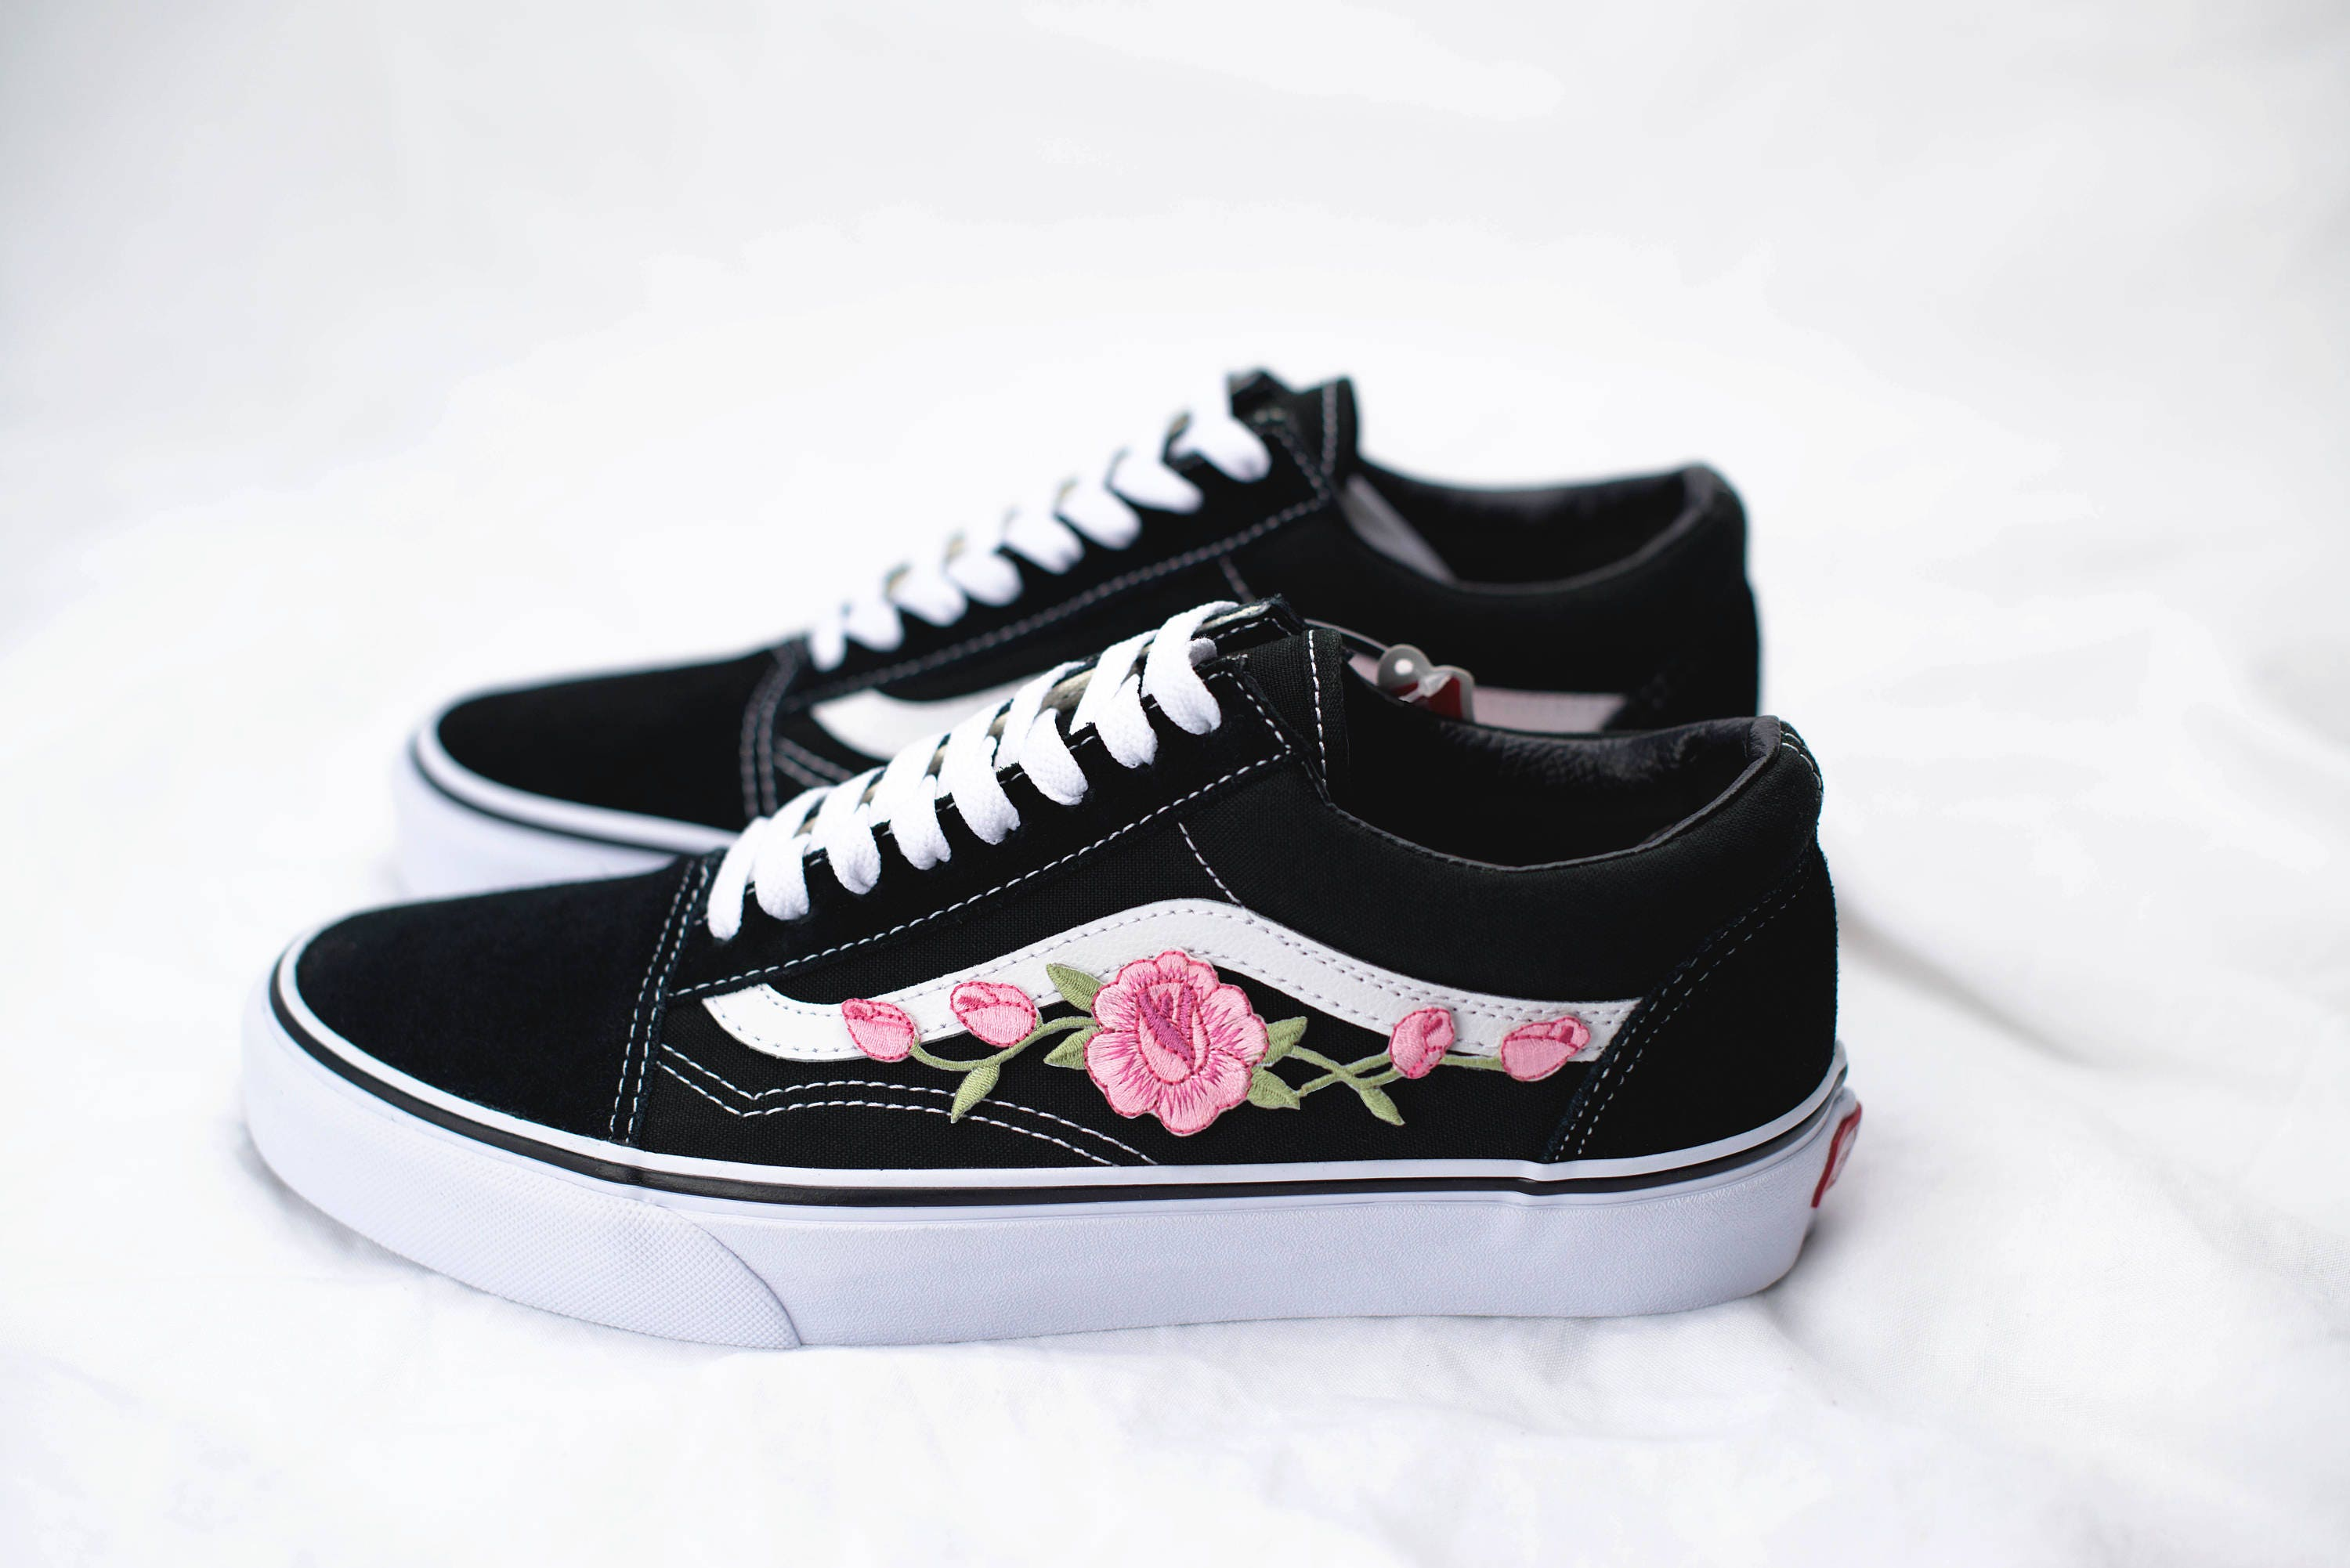 vans old skool custom 39 rose patch 39 eur 34 5 47. Black Bedroom Furniture Sets. Home Design Ideas